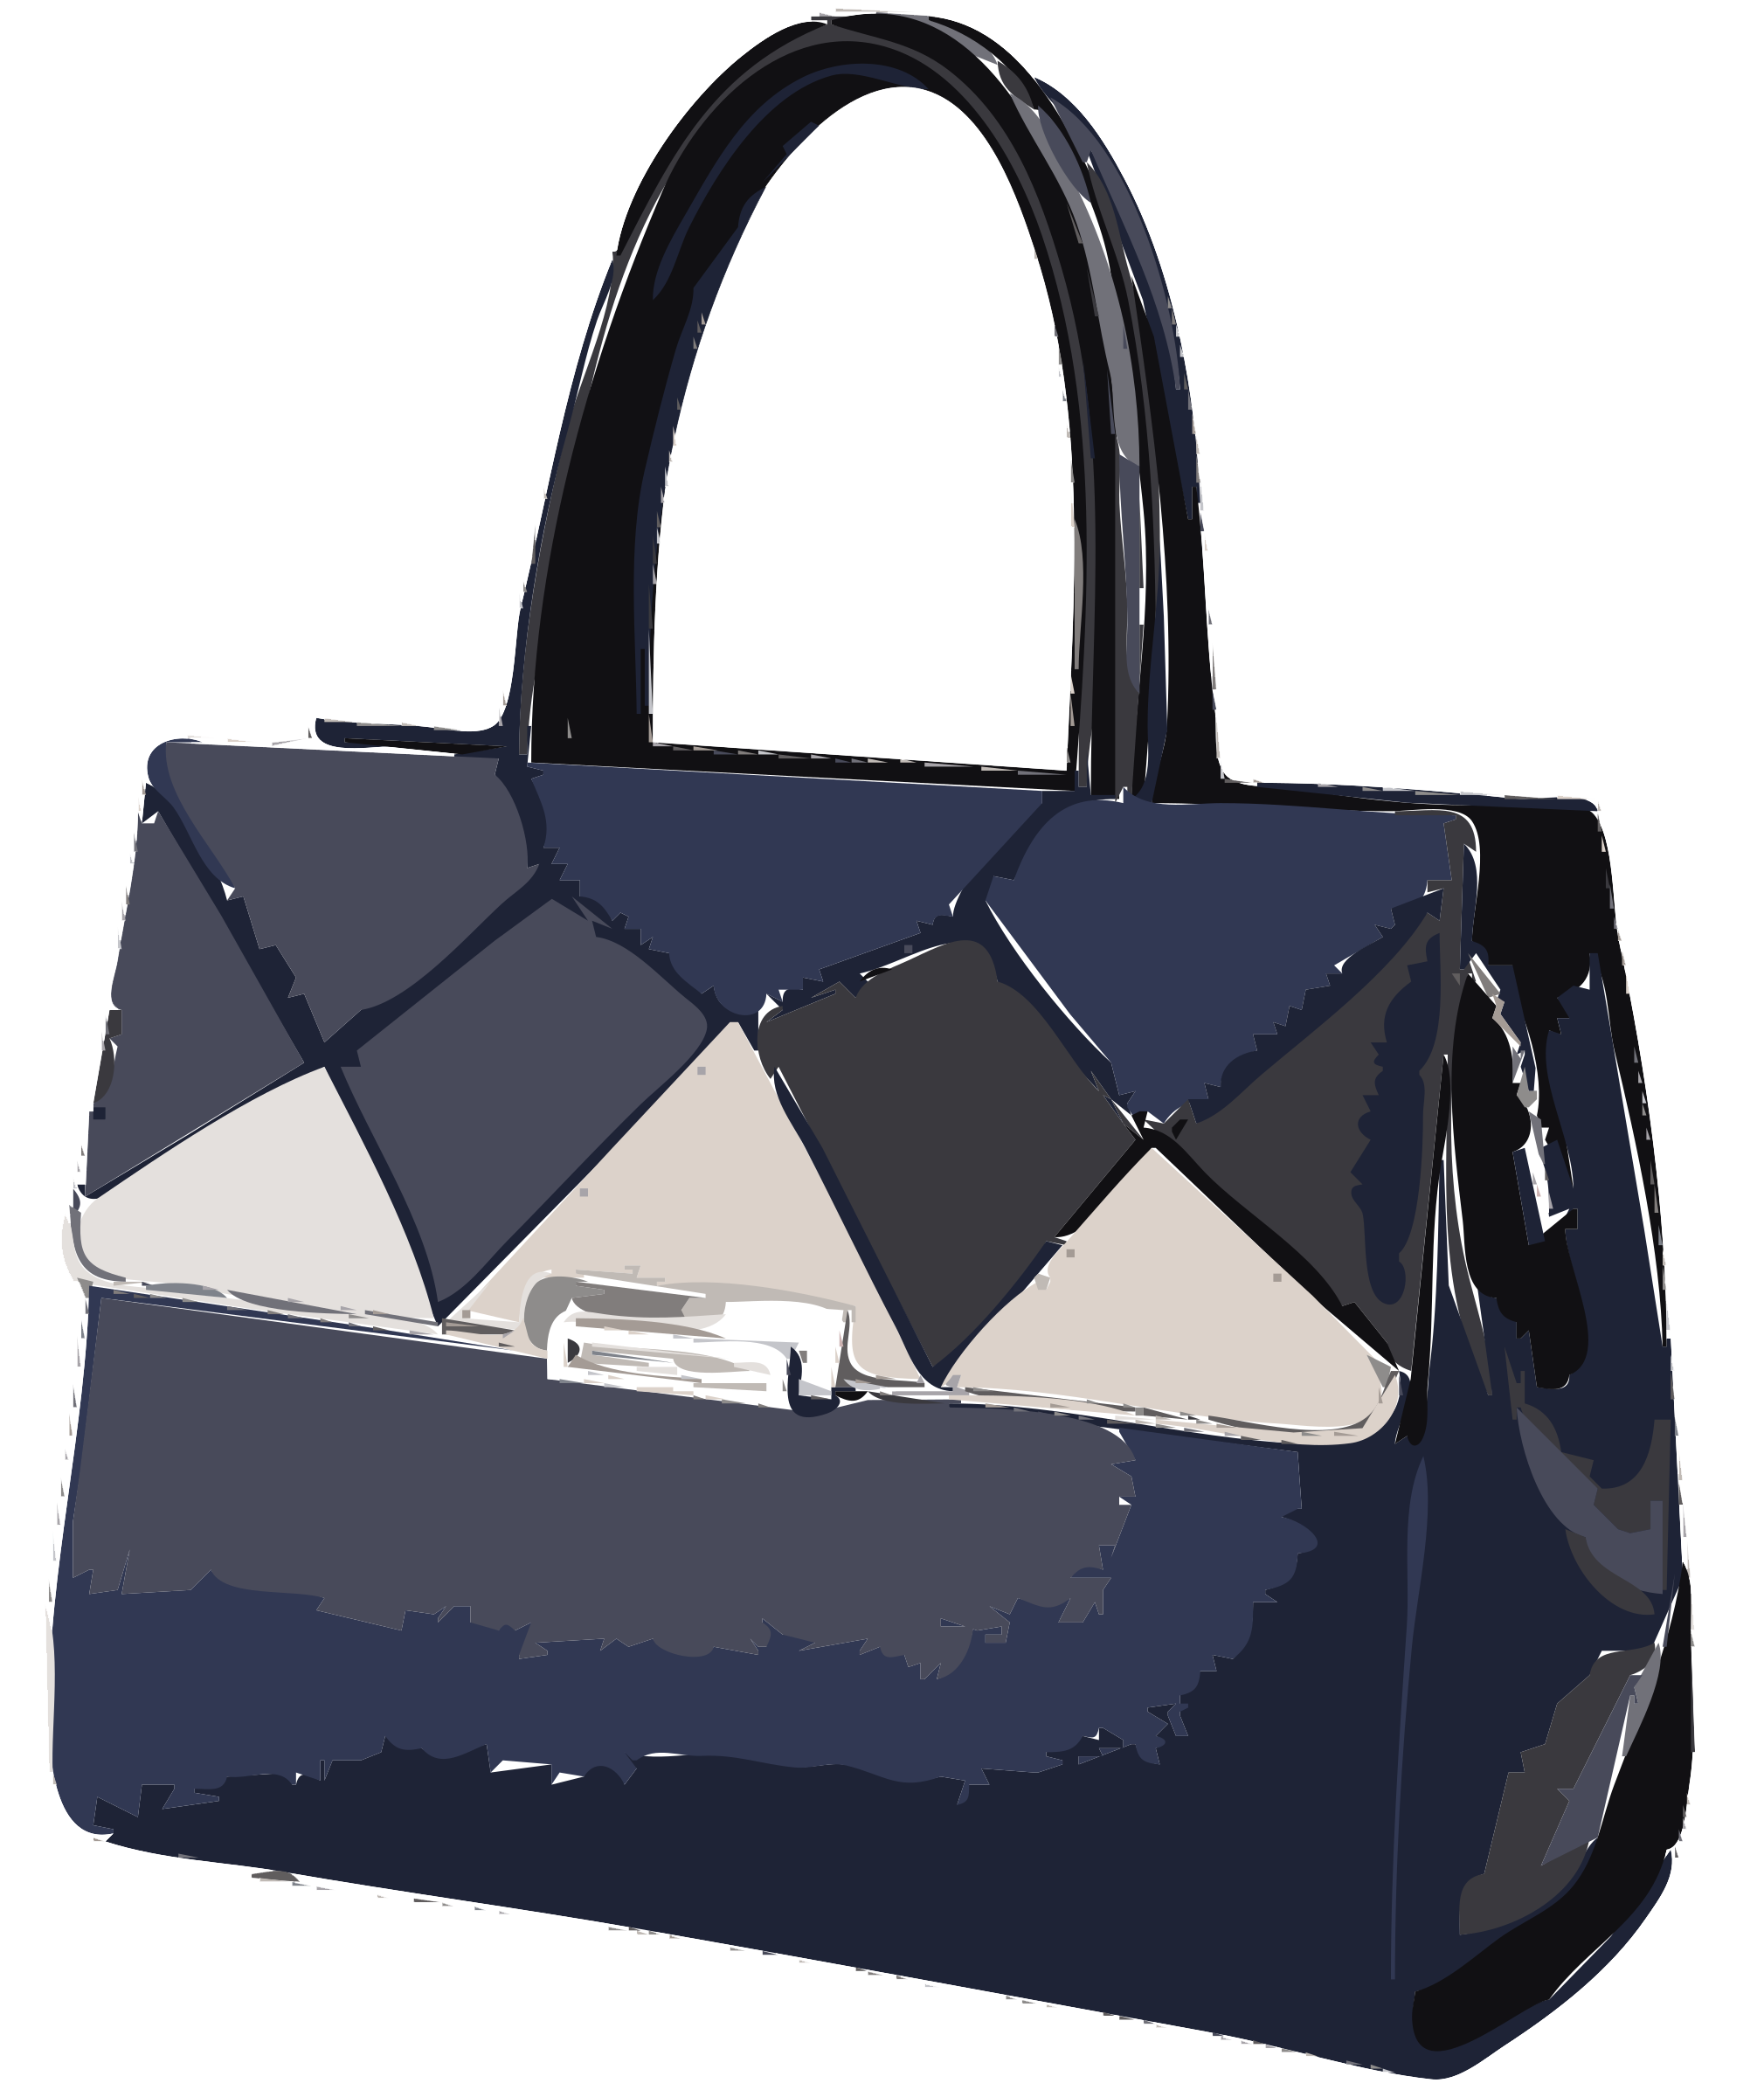 Purse Clipart PNG Image